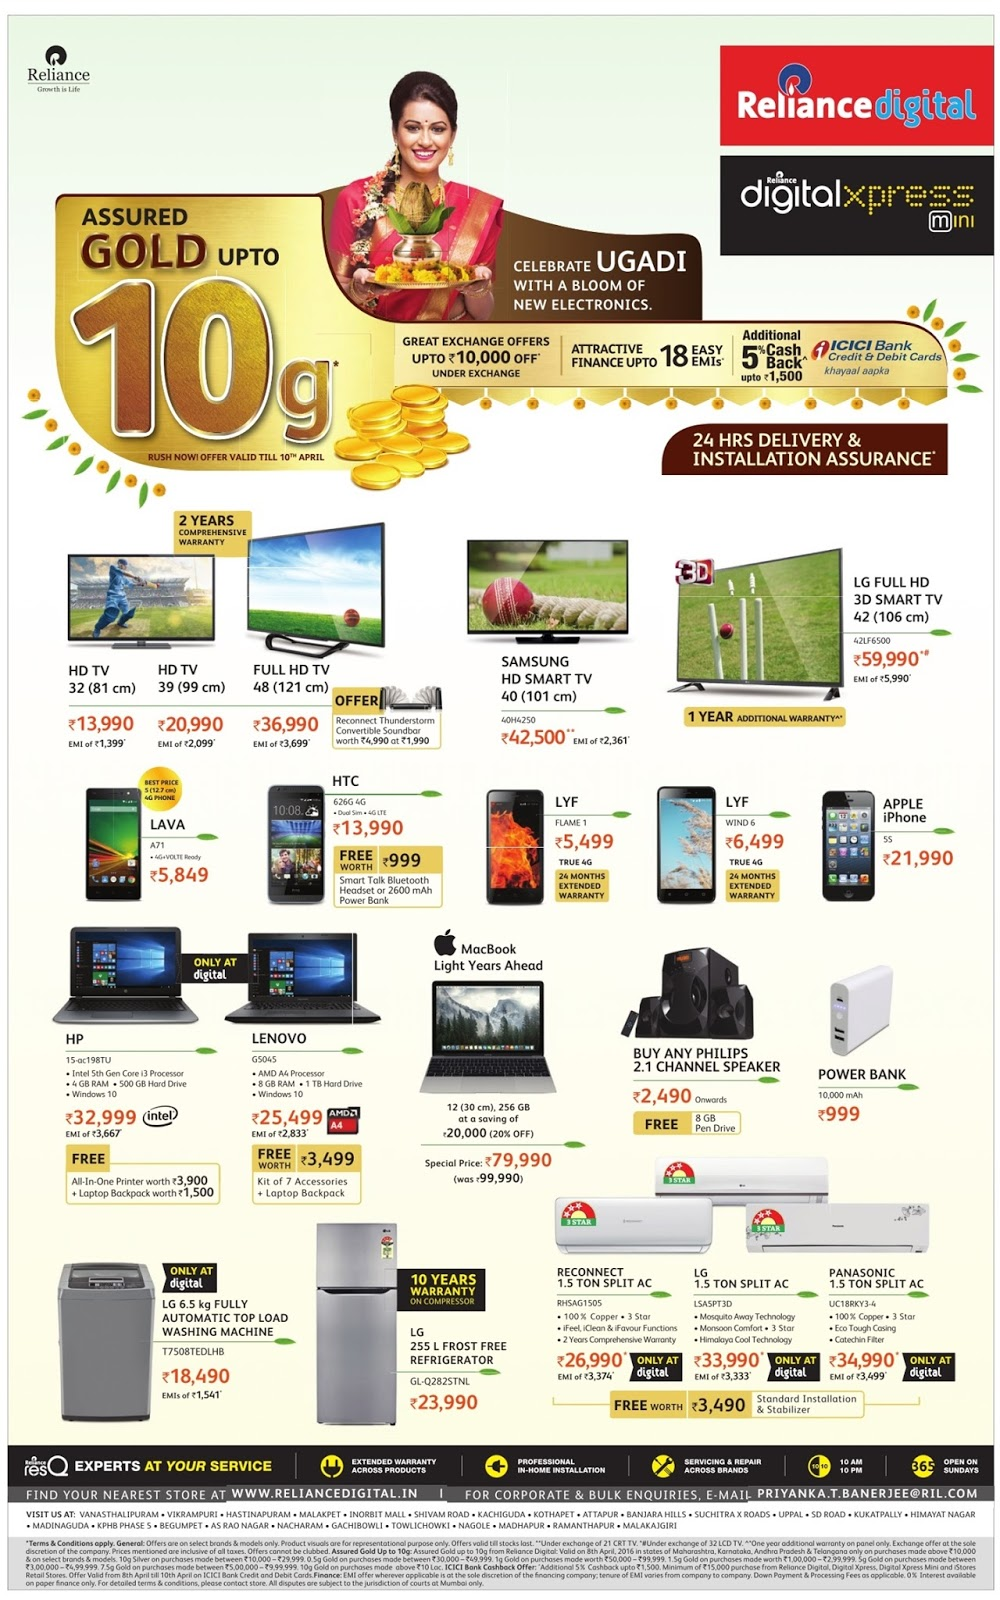 Reliance Digital Ugadi dhamaka | Assured gold up tp 10 grams | April 2016 Ugadi festival discount offer